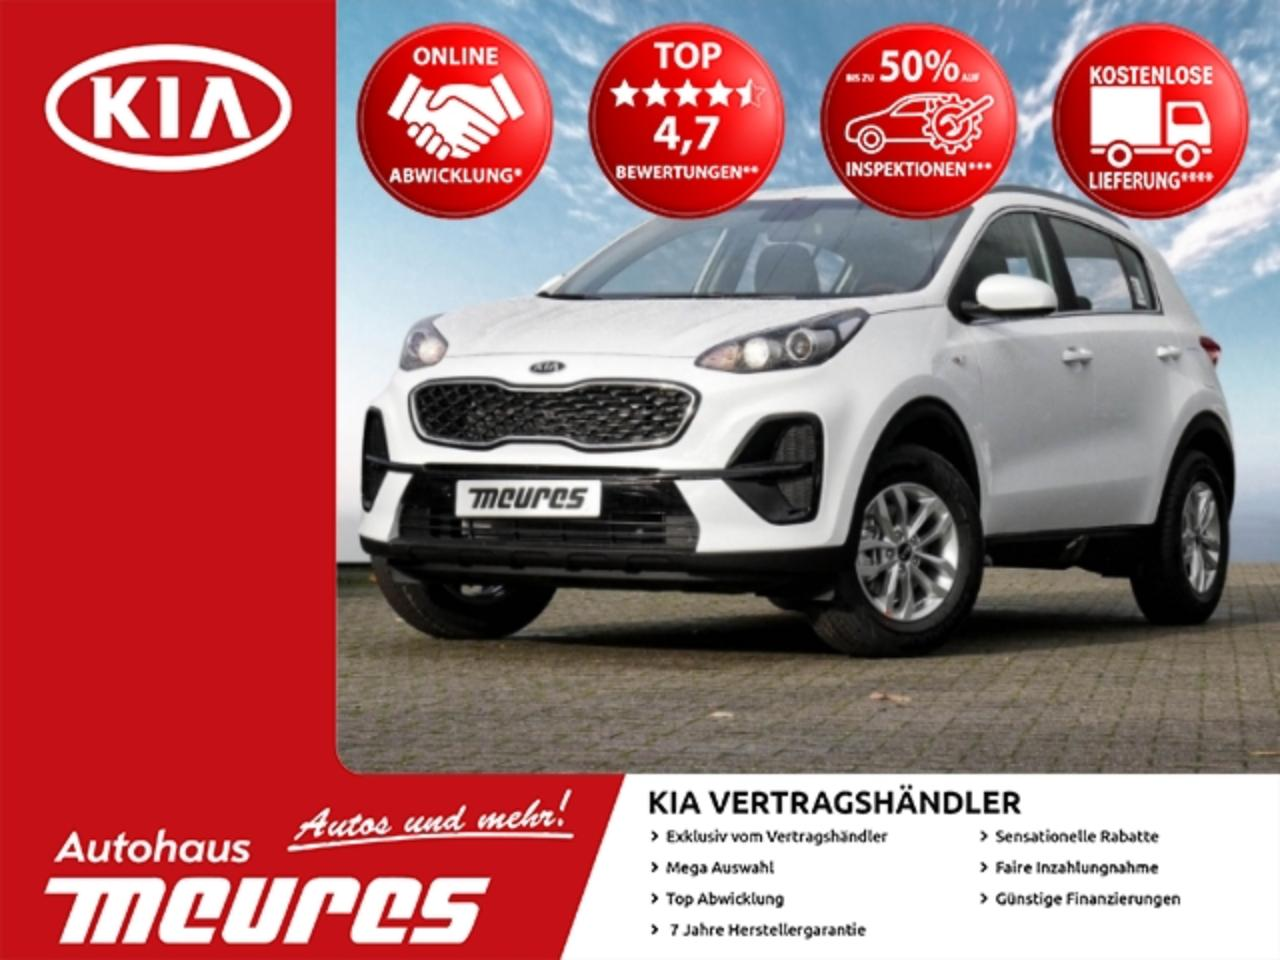 Kia Sportage Edition 7 2WD 1.6 GDI APPLE ANDROID PDC -